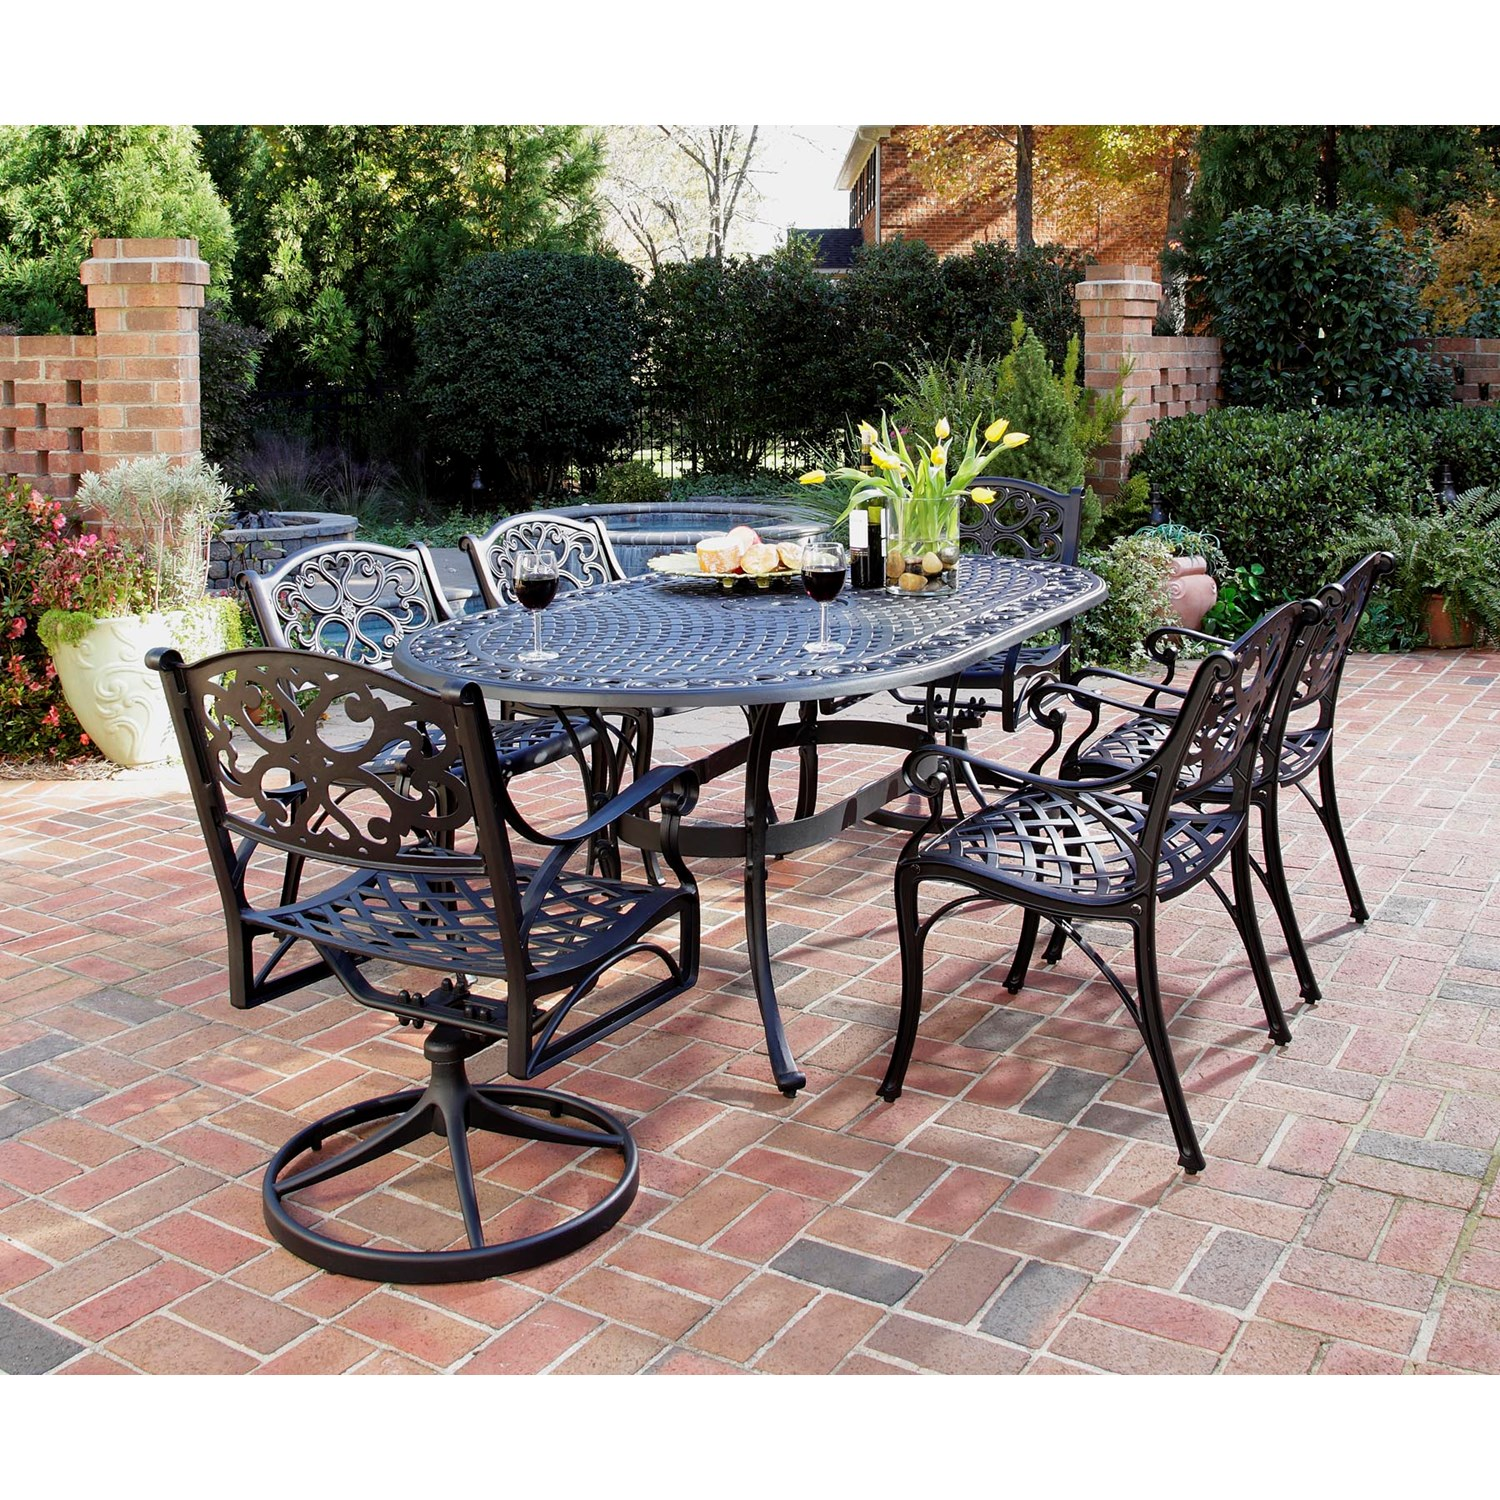 Outdoor dining sets black